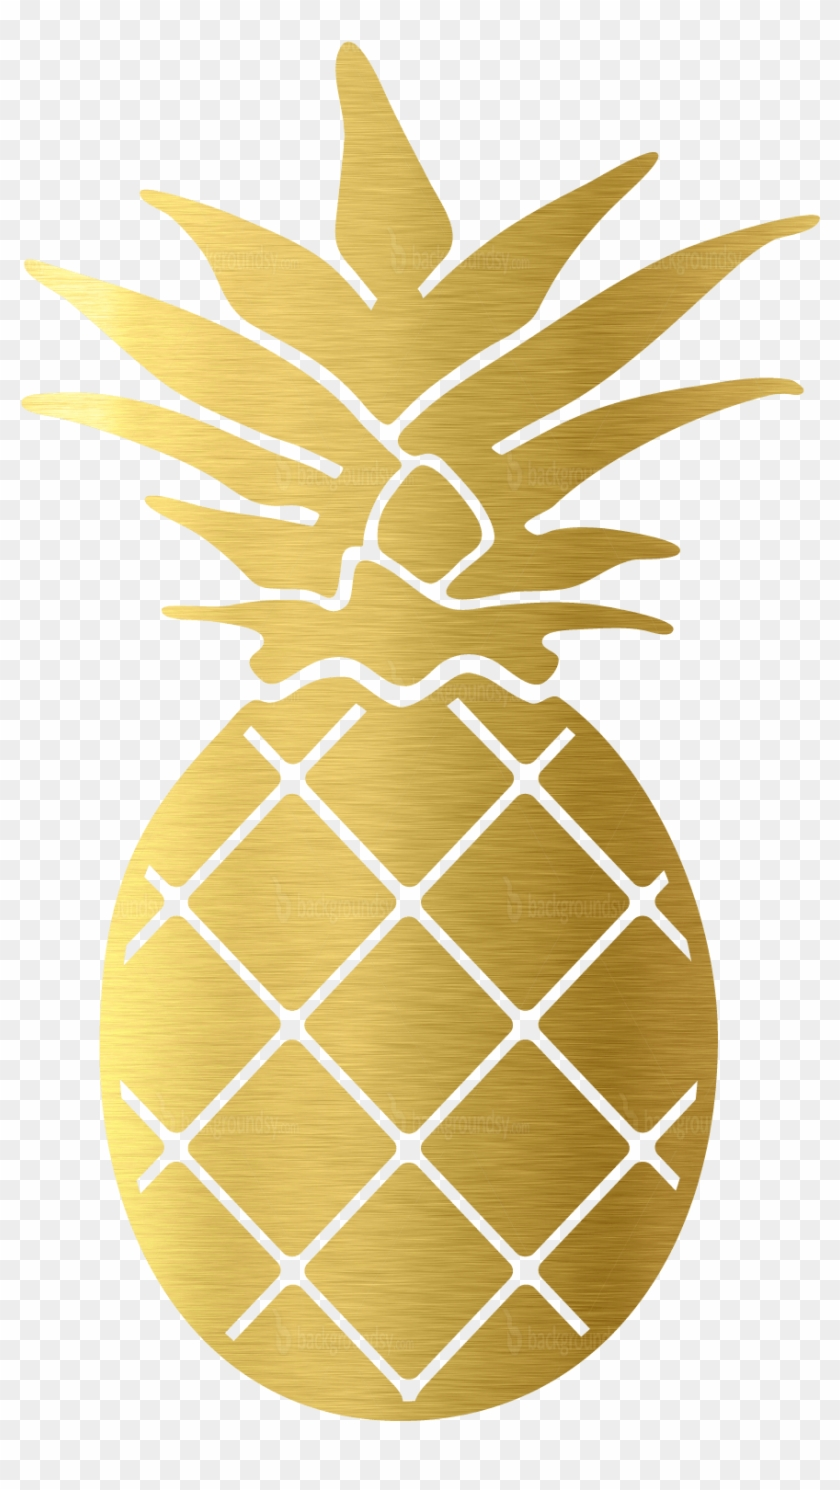 Gold Pineapple Png.